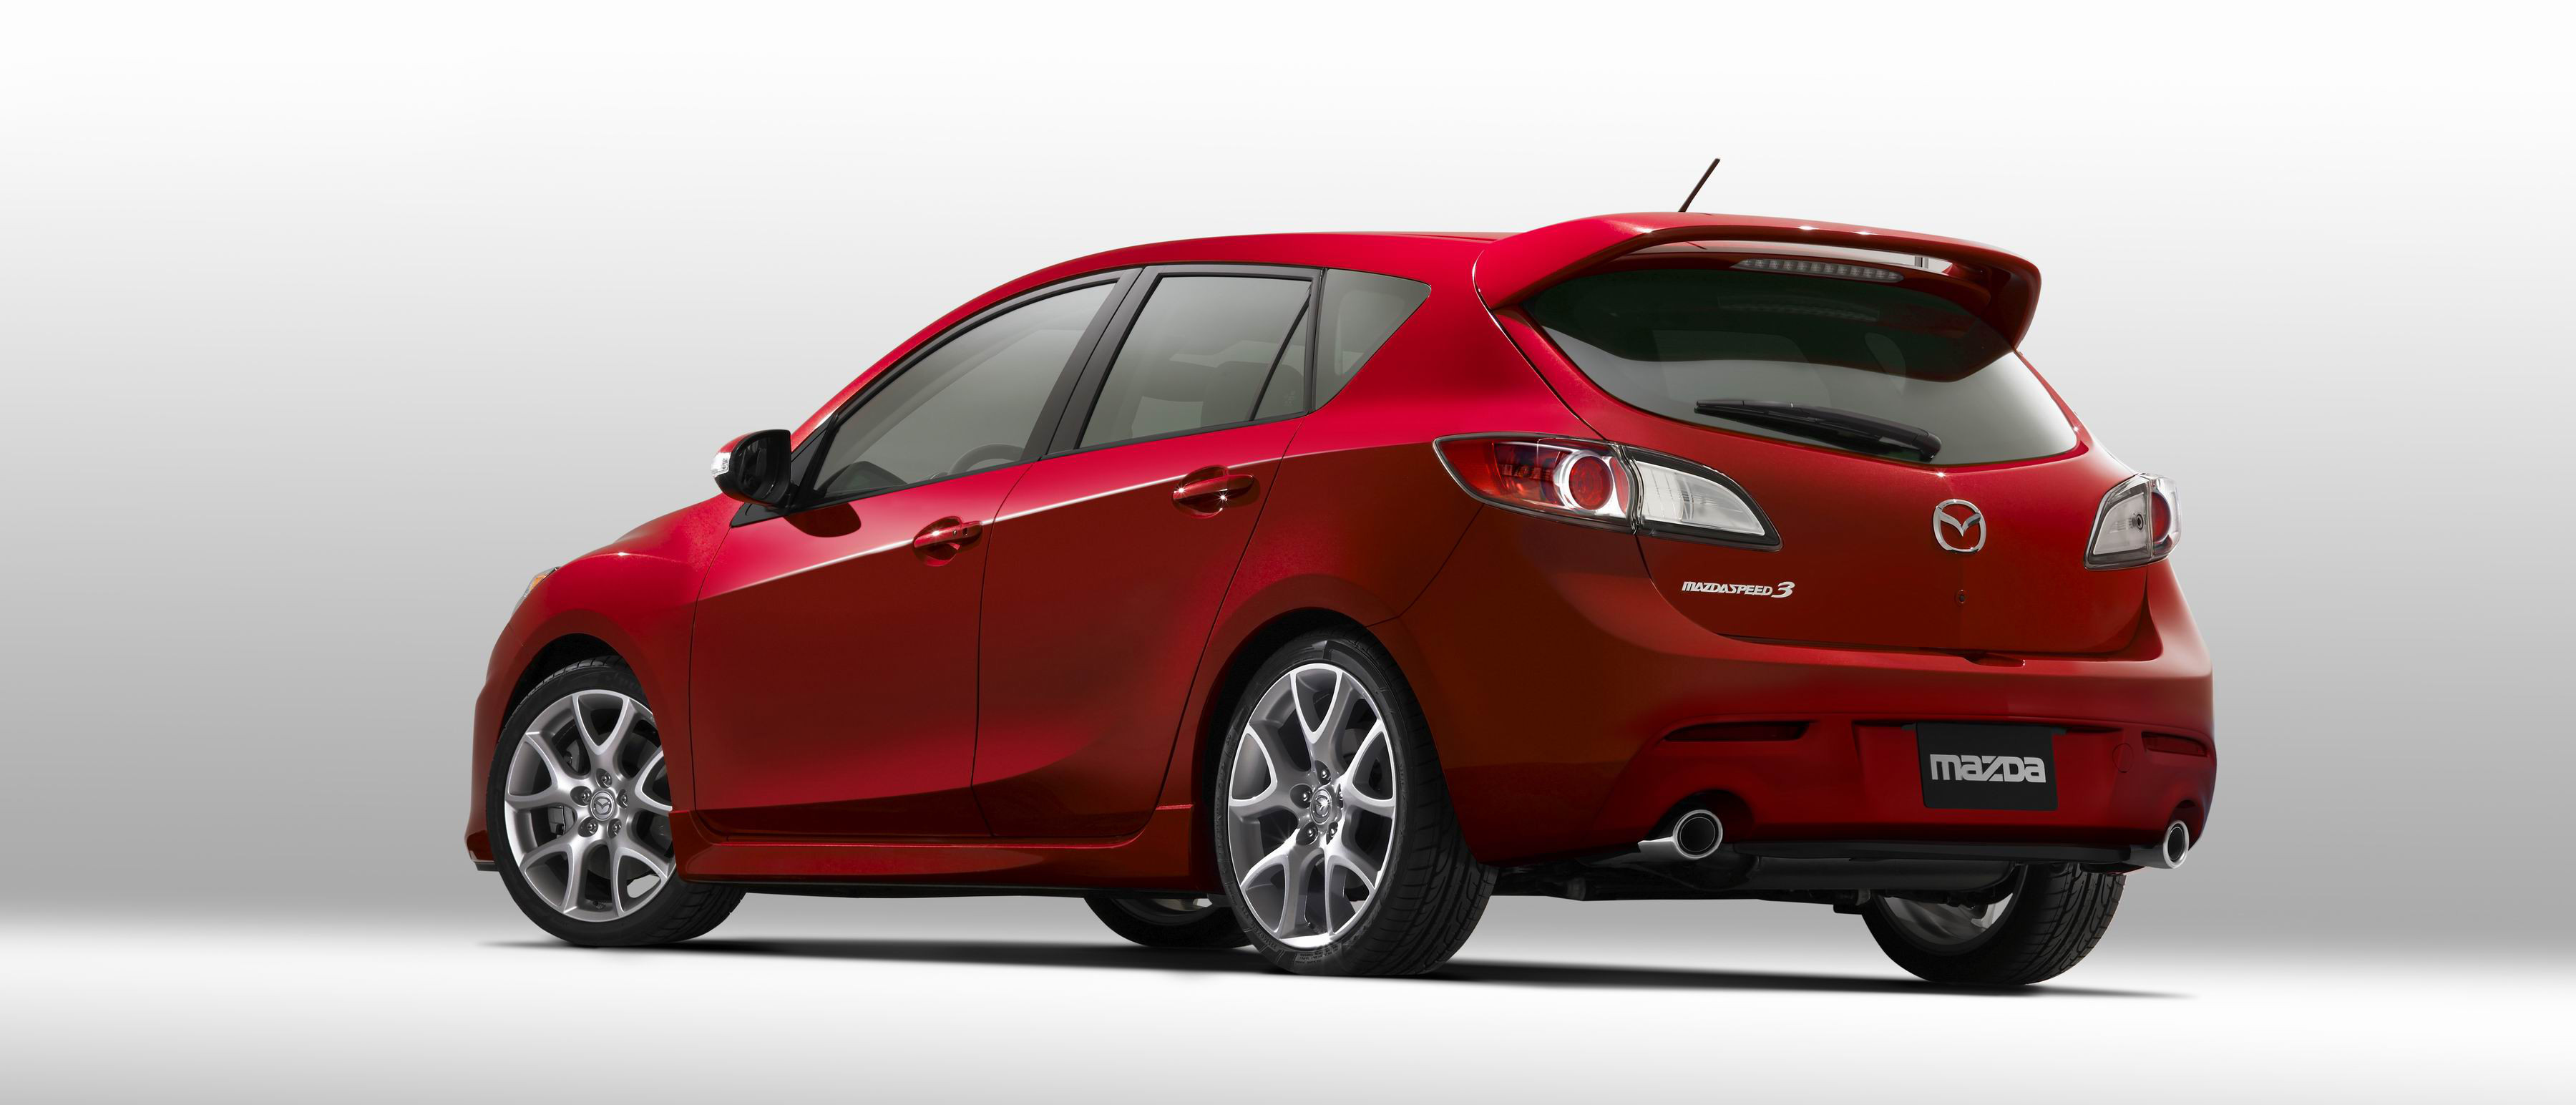 The 2017 Mazdaspeed3 Redesign What Is Different 2011 Mazda 3 Fuel Filter